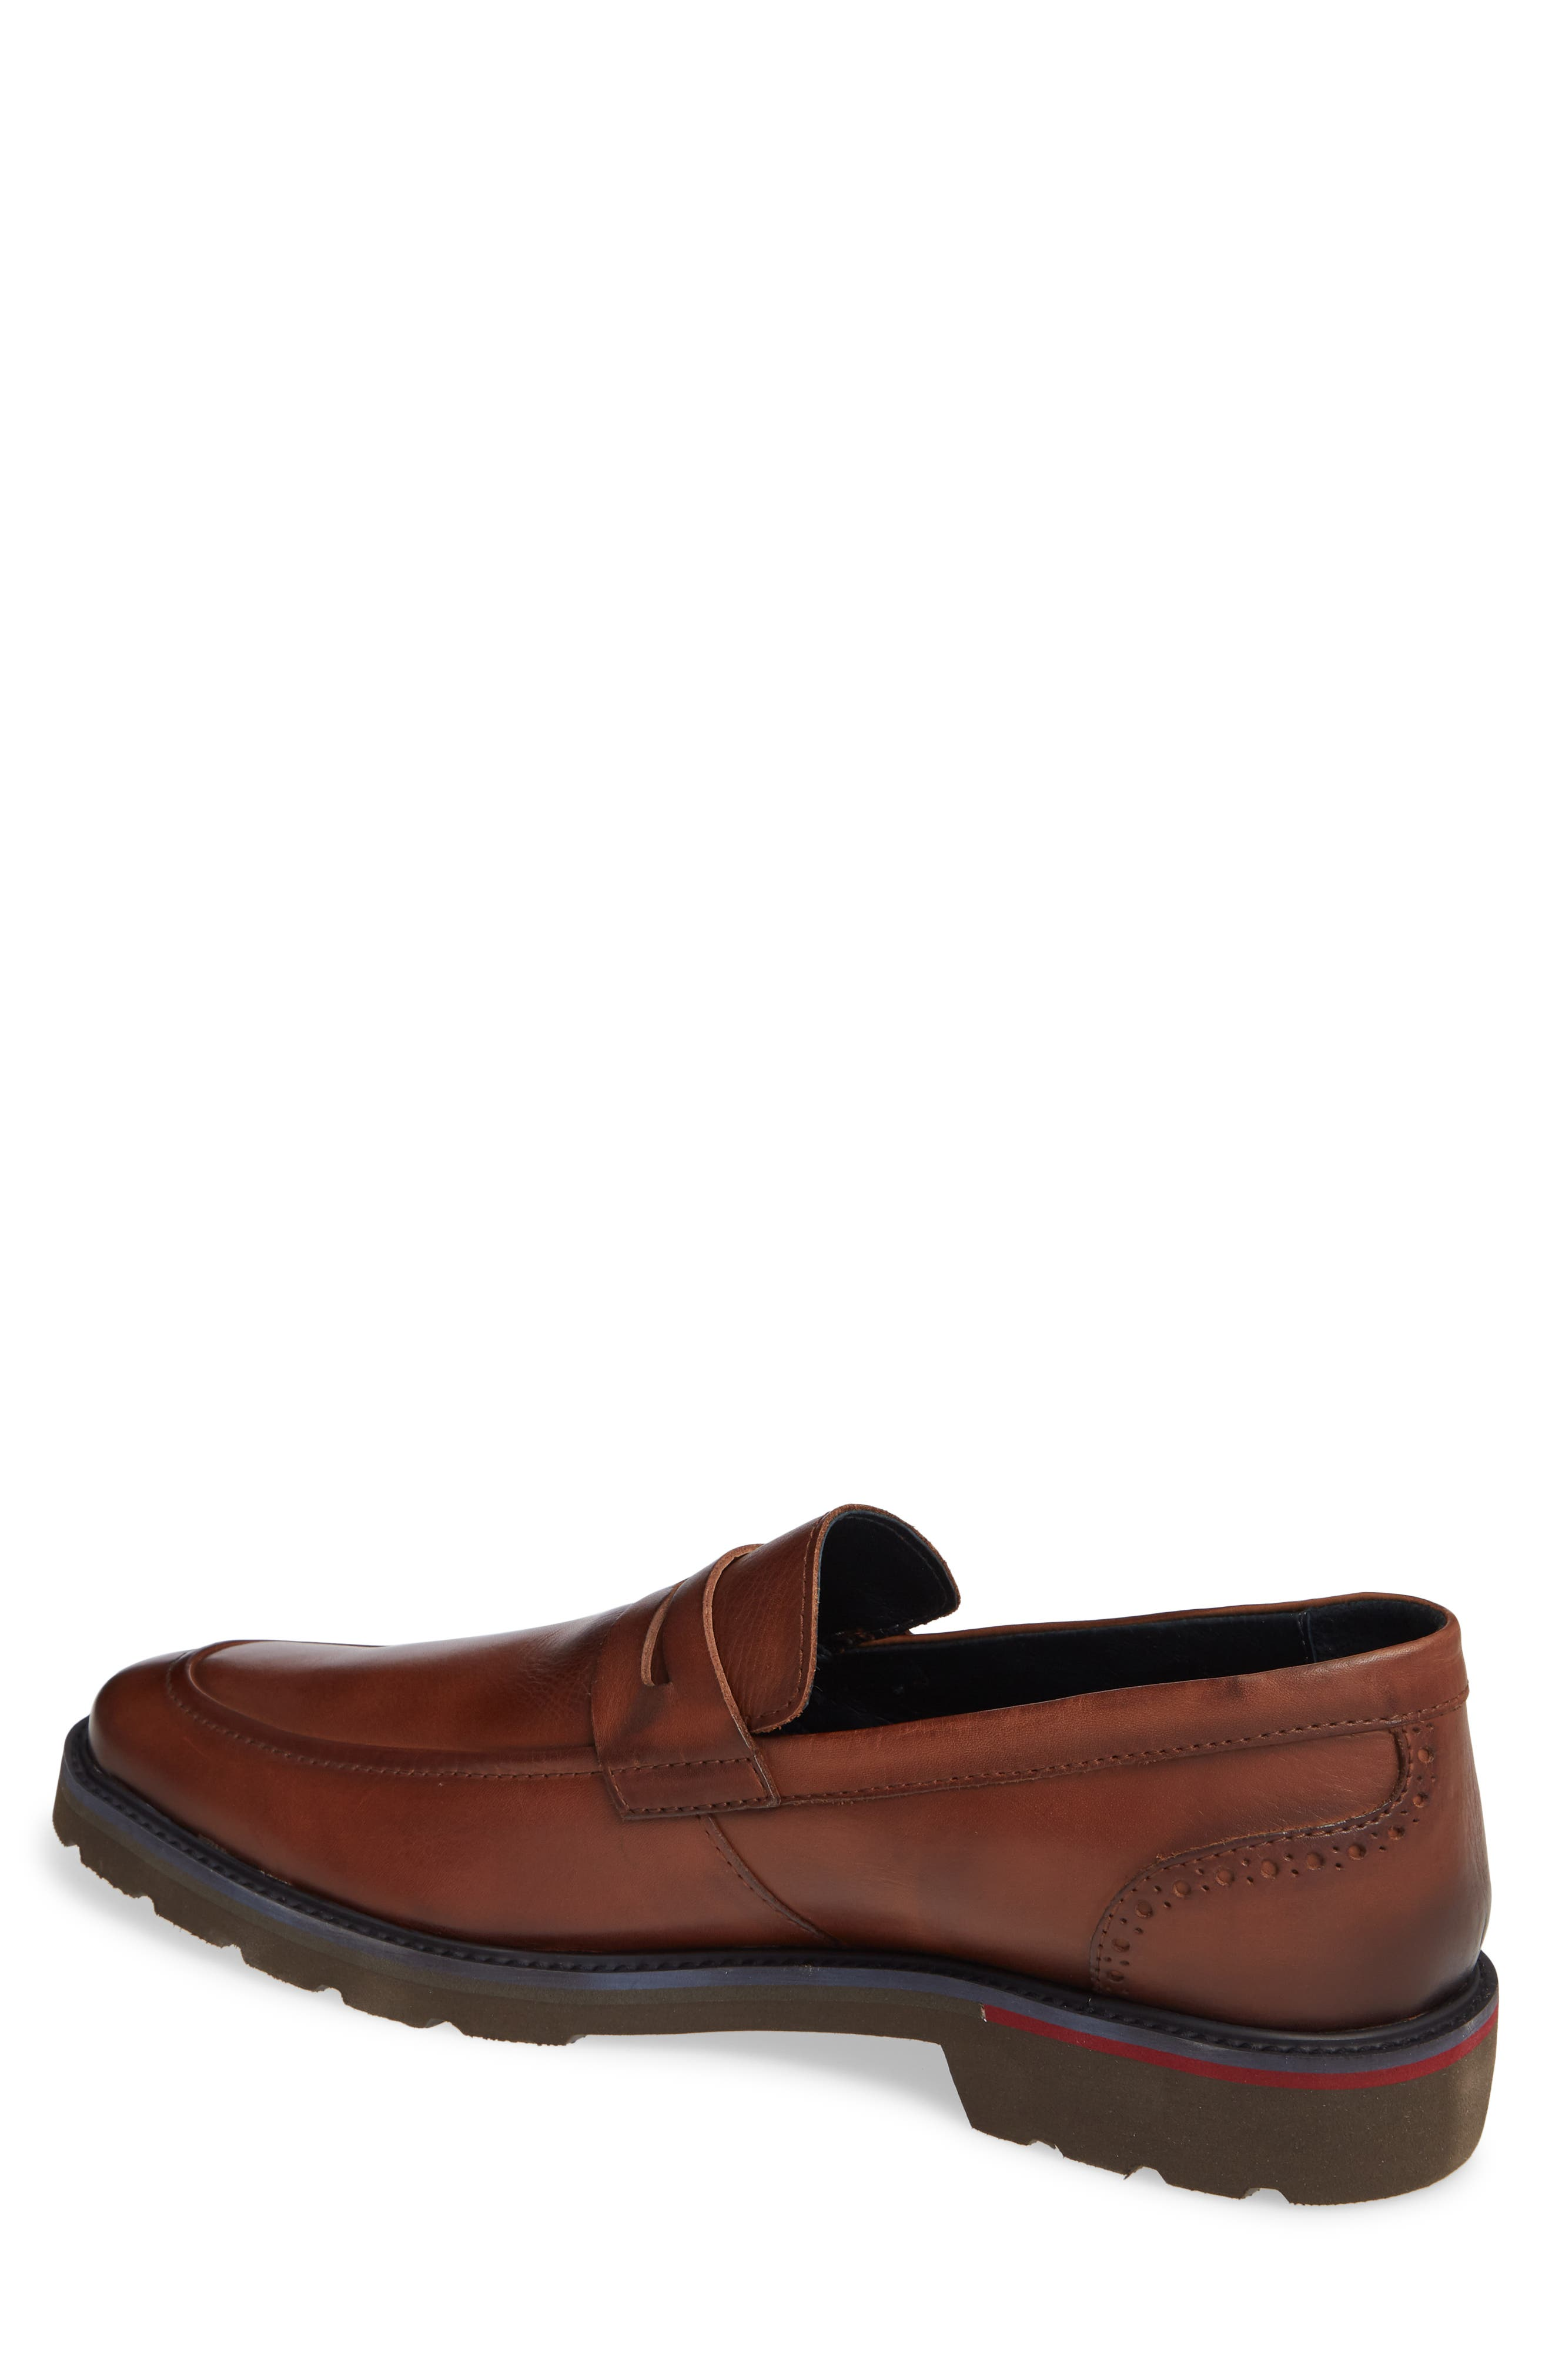 Salou Penny Loafer,                             Alternate thumbnail 2, color,                             203